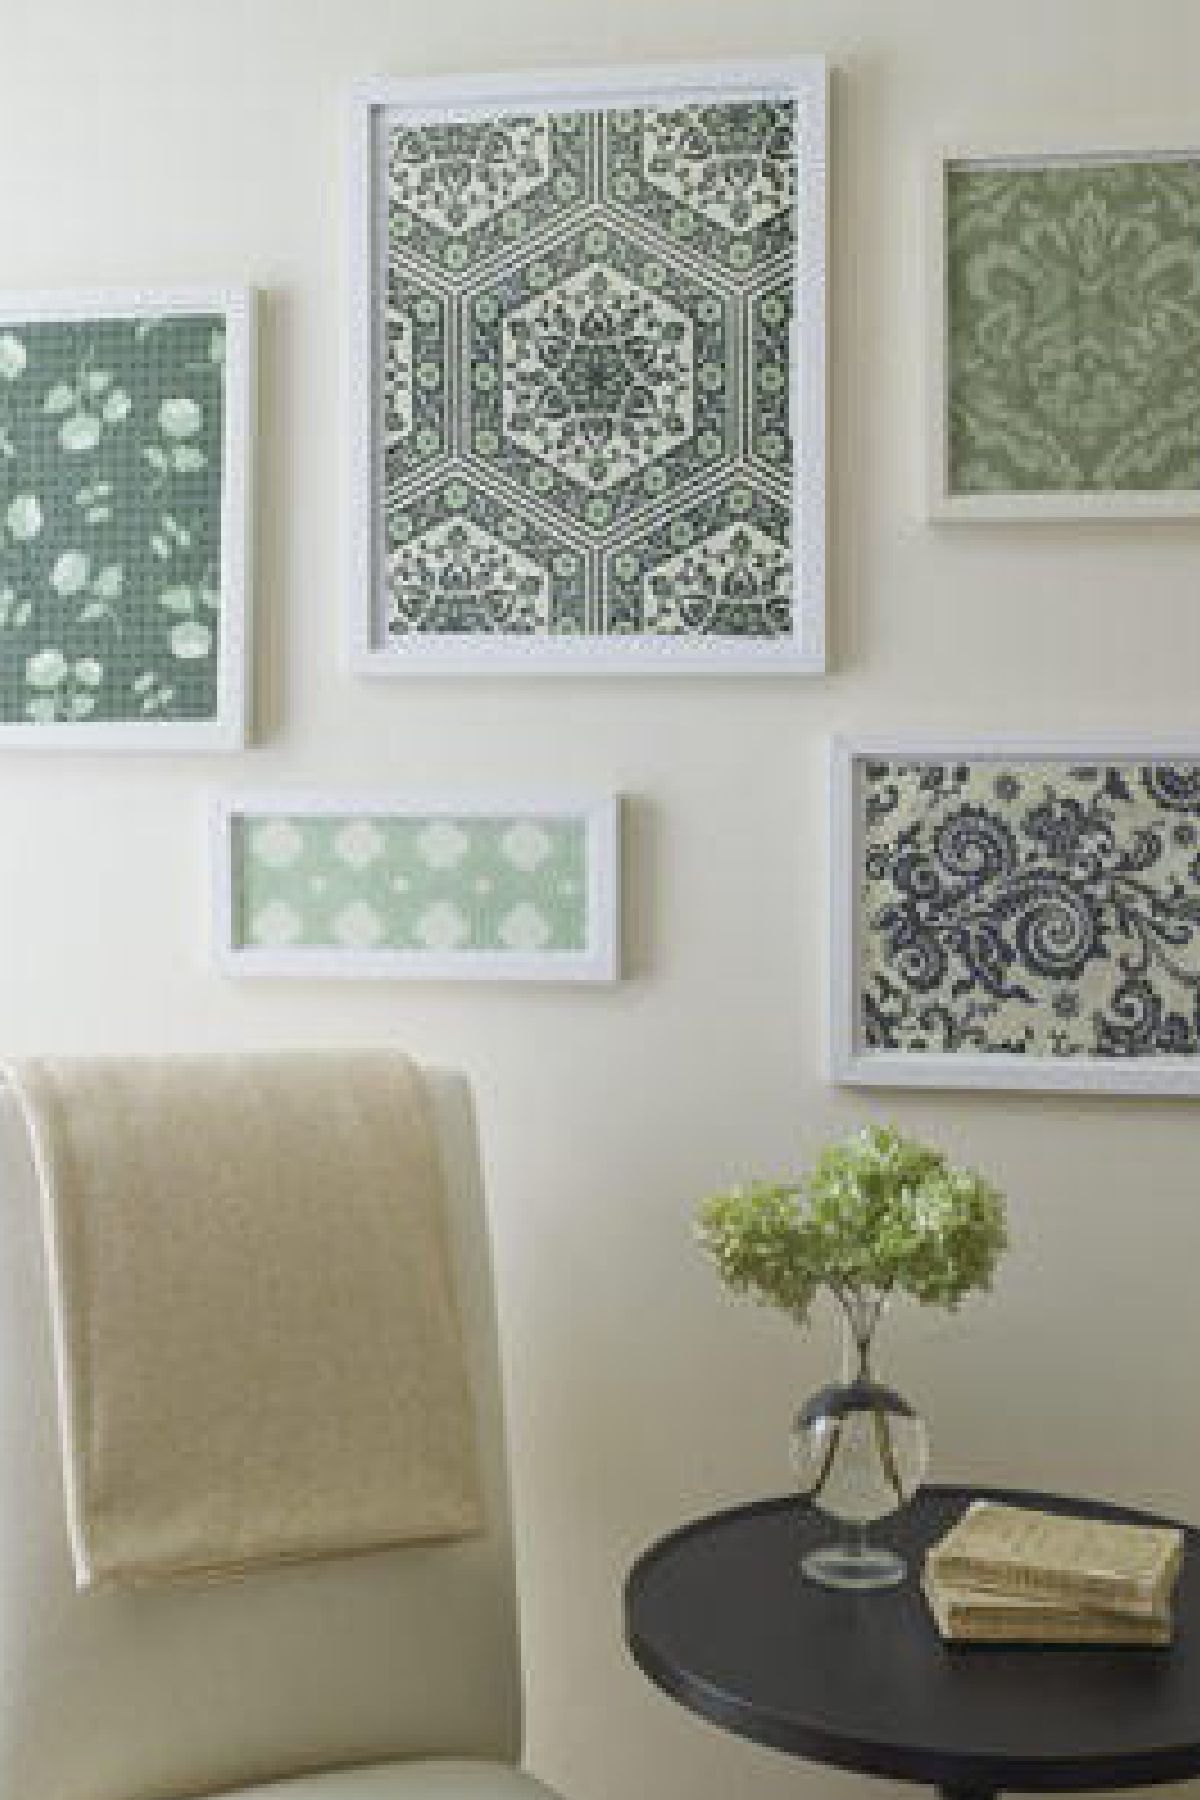 Lori what about coordinating fabrics from quilt behind glass